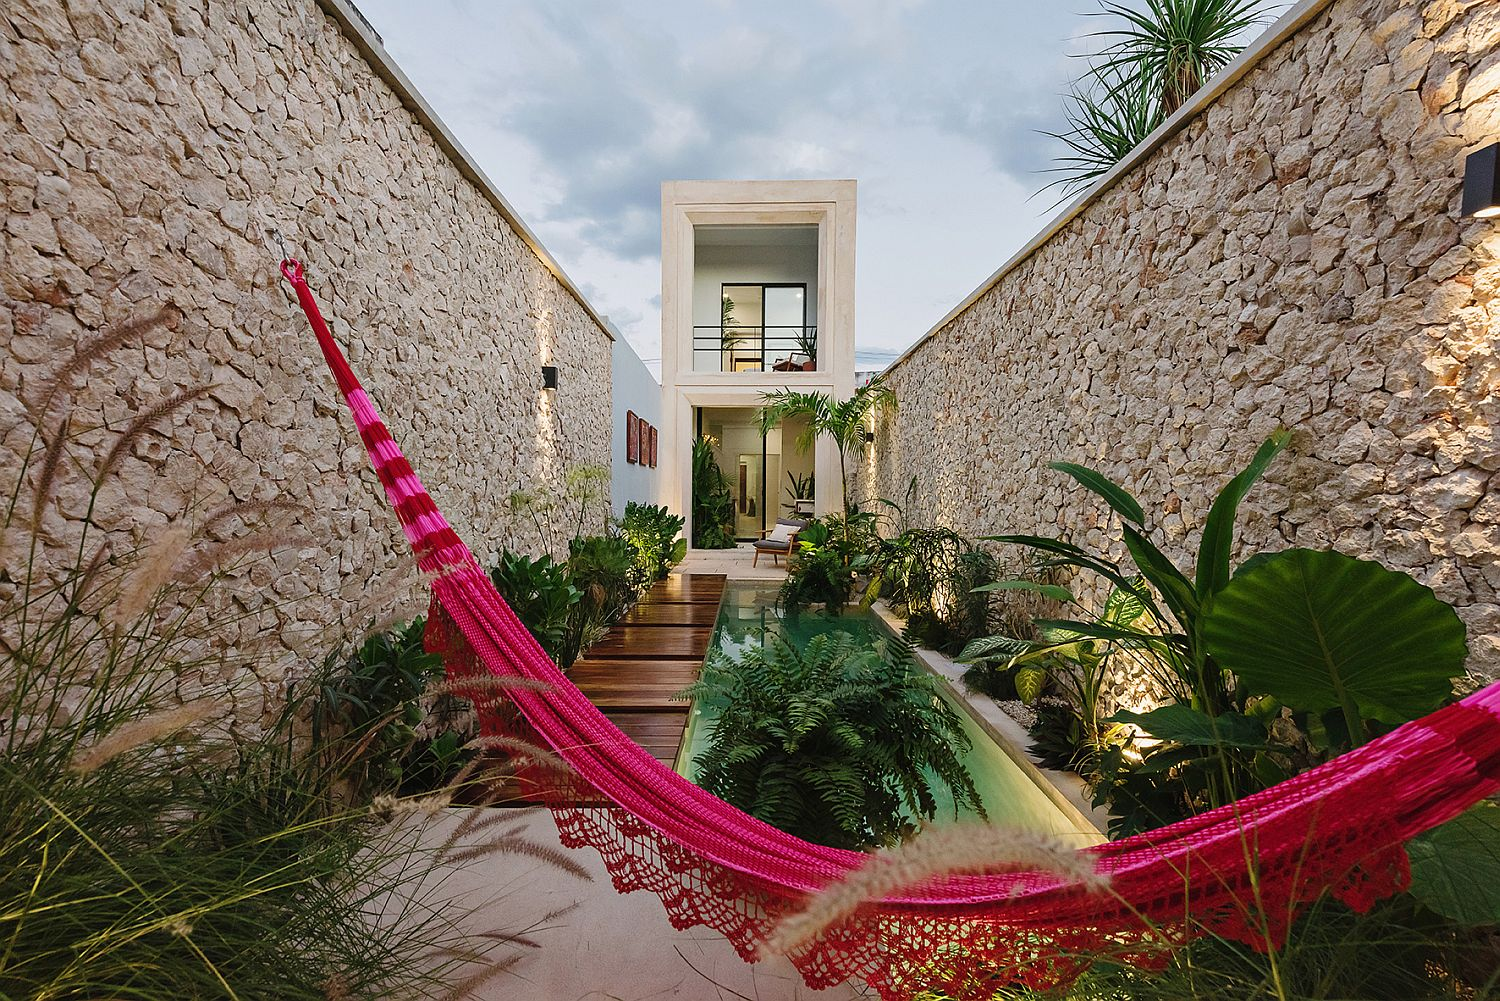 Hammock-adds-color-and-charming-holiday-appeal-to-the-house